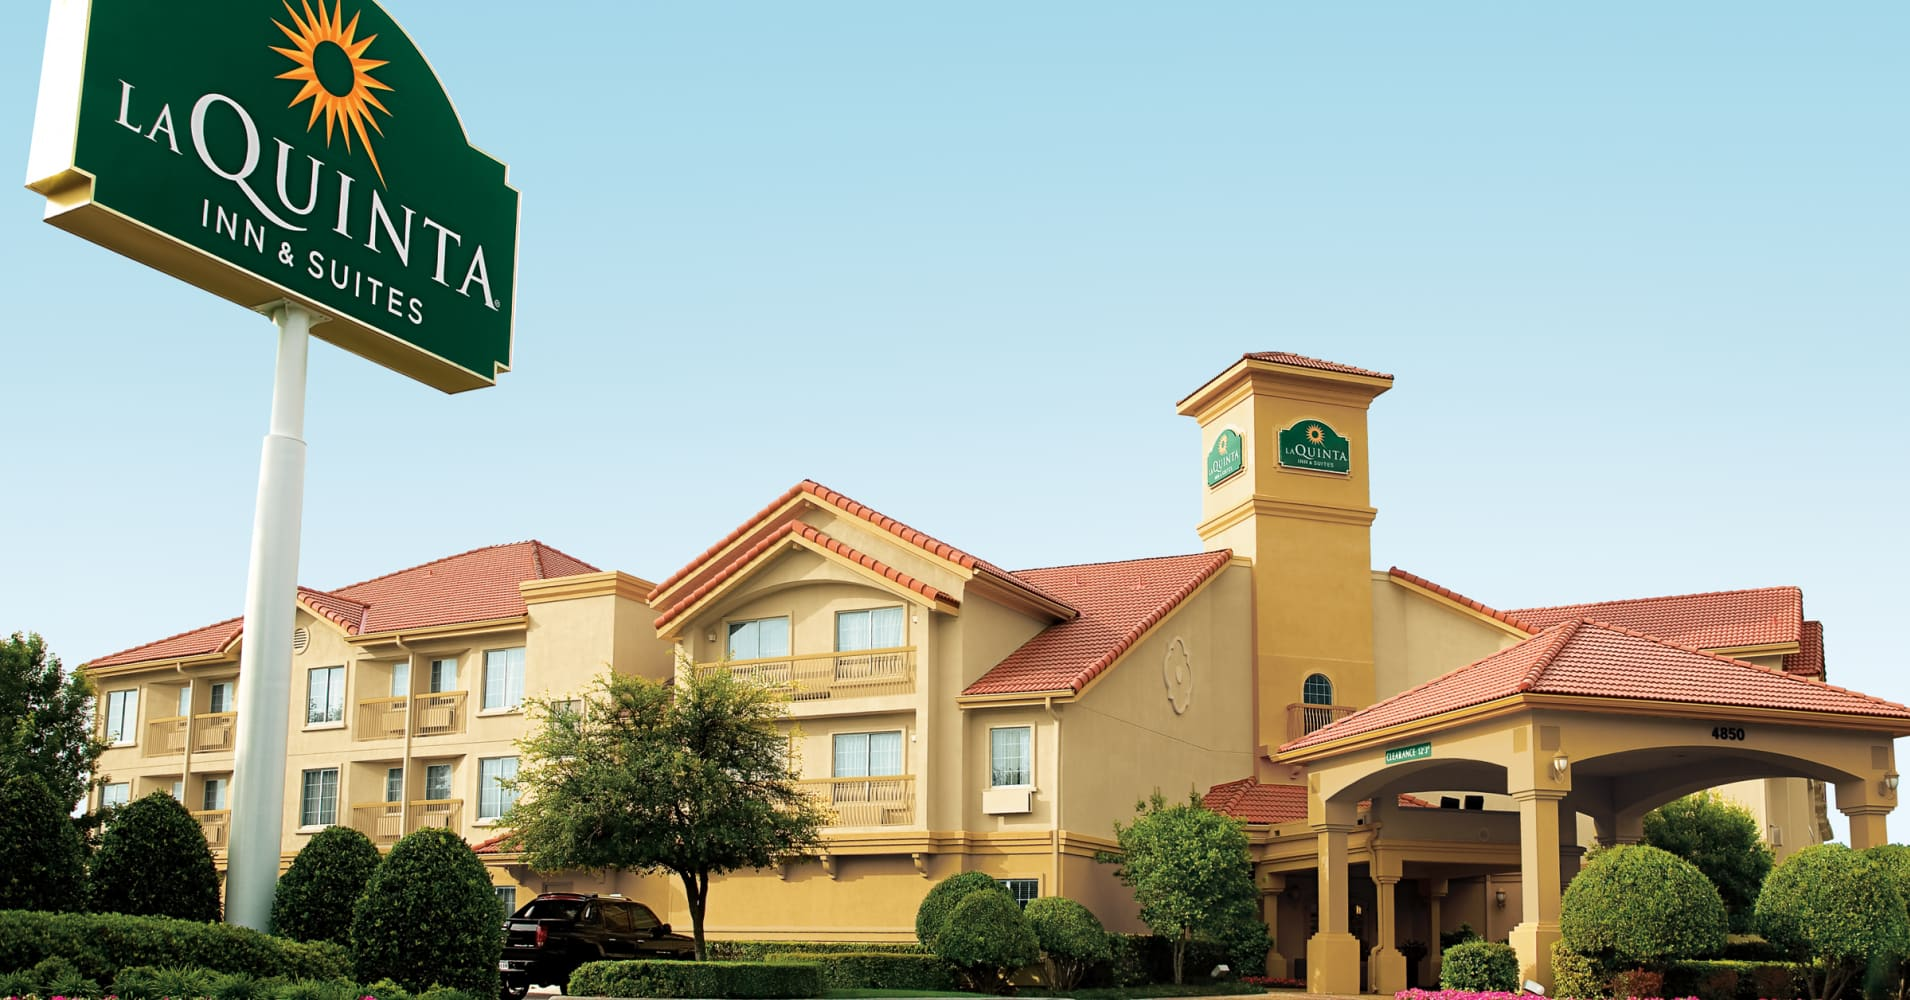 Wyndham Worldwide to buy La Quinta's hotel business for $1.95 billion